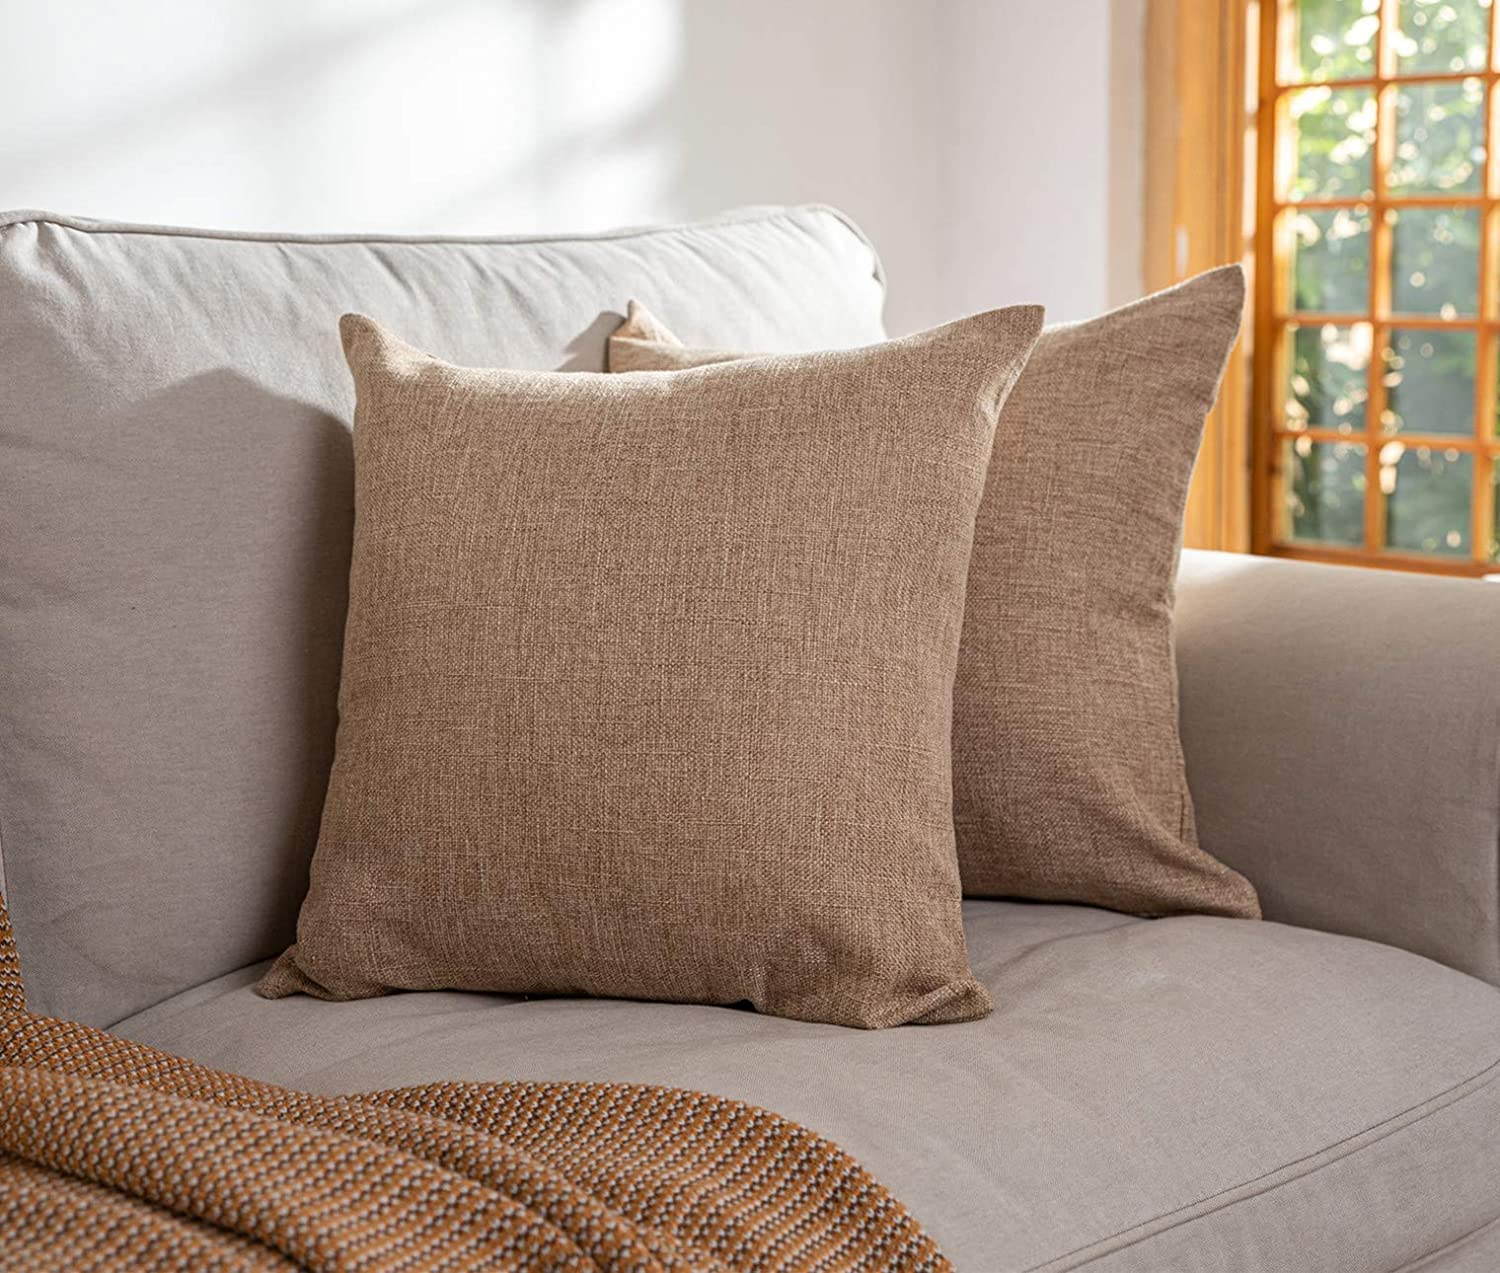 Elara Star Set of 2 Cotton Linen Throw Pillow Cases Solid Square Decorative Pillow Covers 18x18 Inch for Couch Sofa Bed Chair,Natural Linen